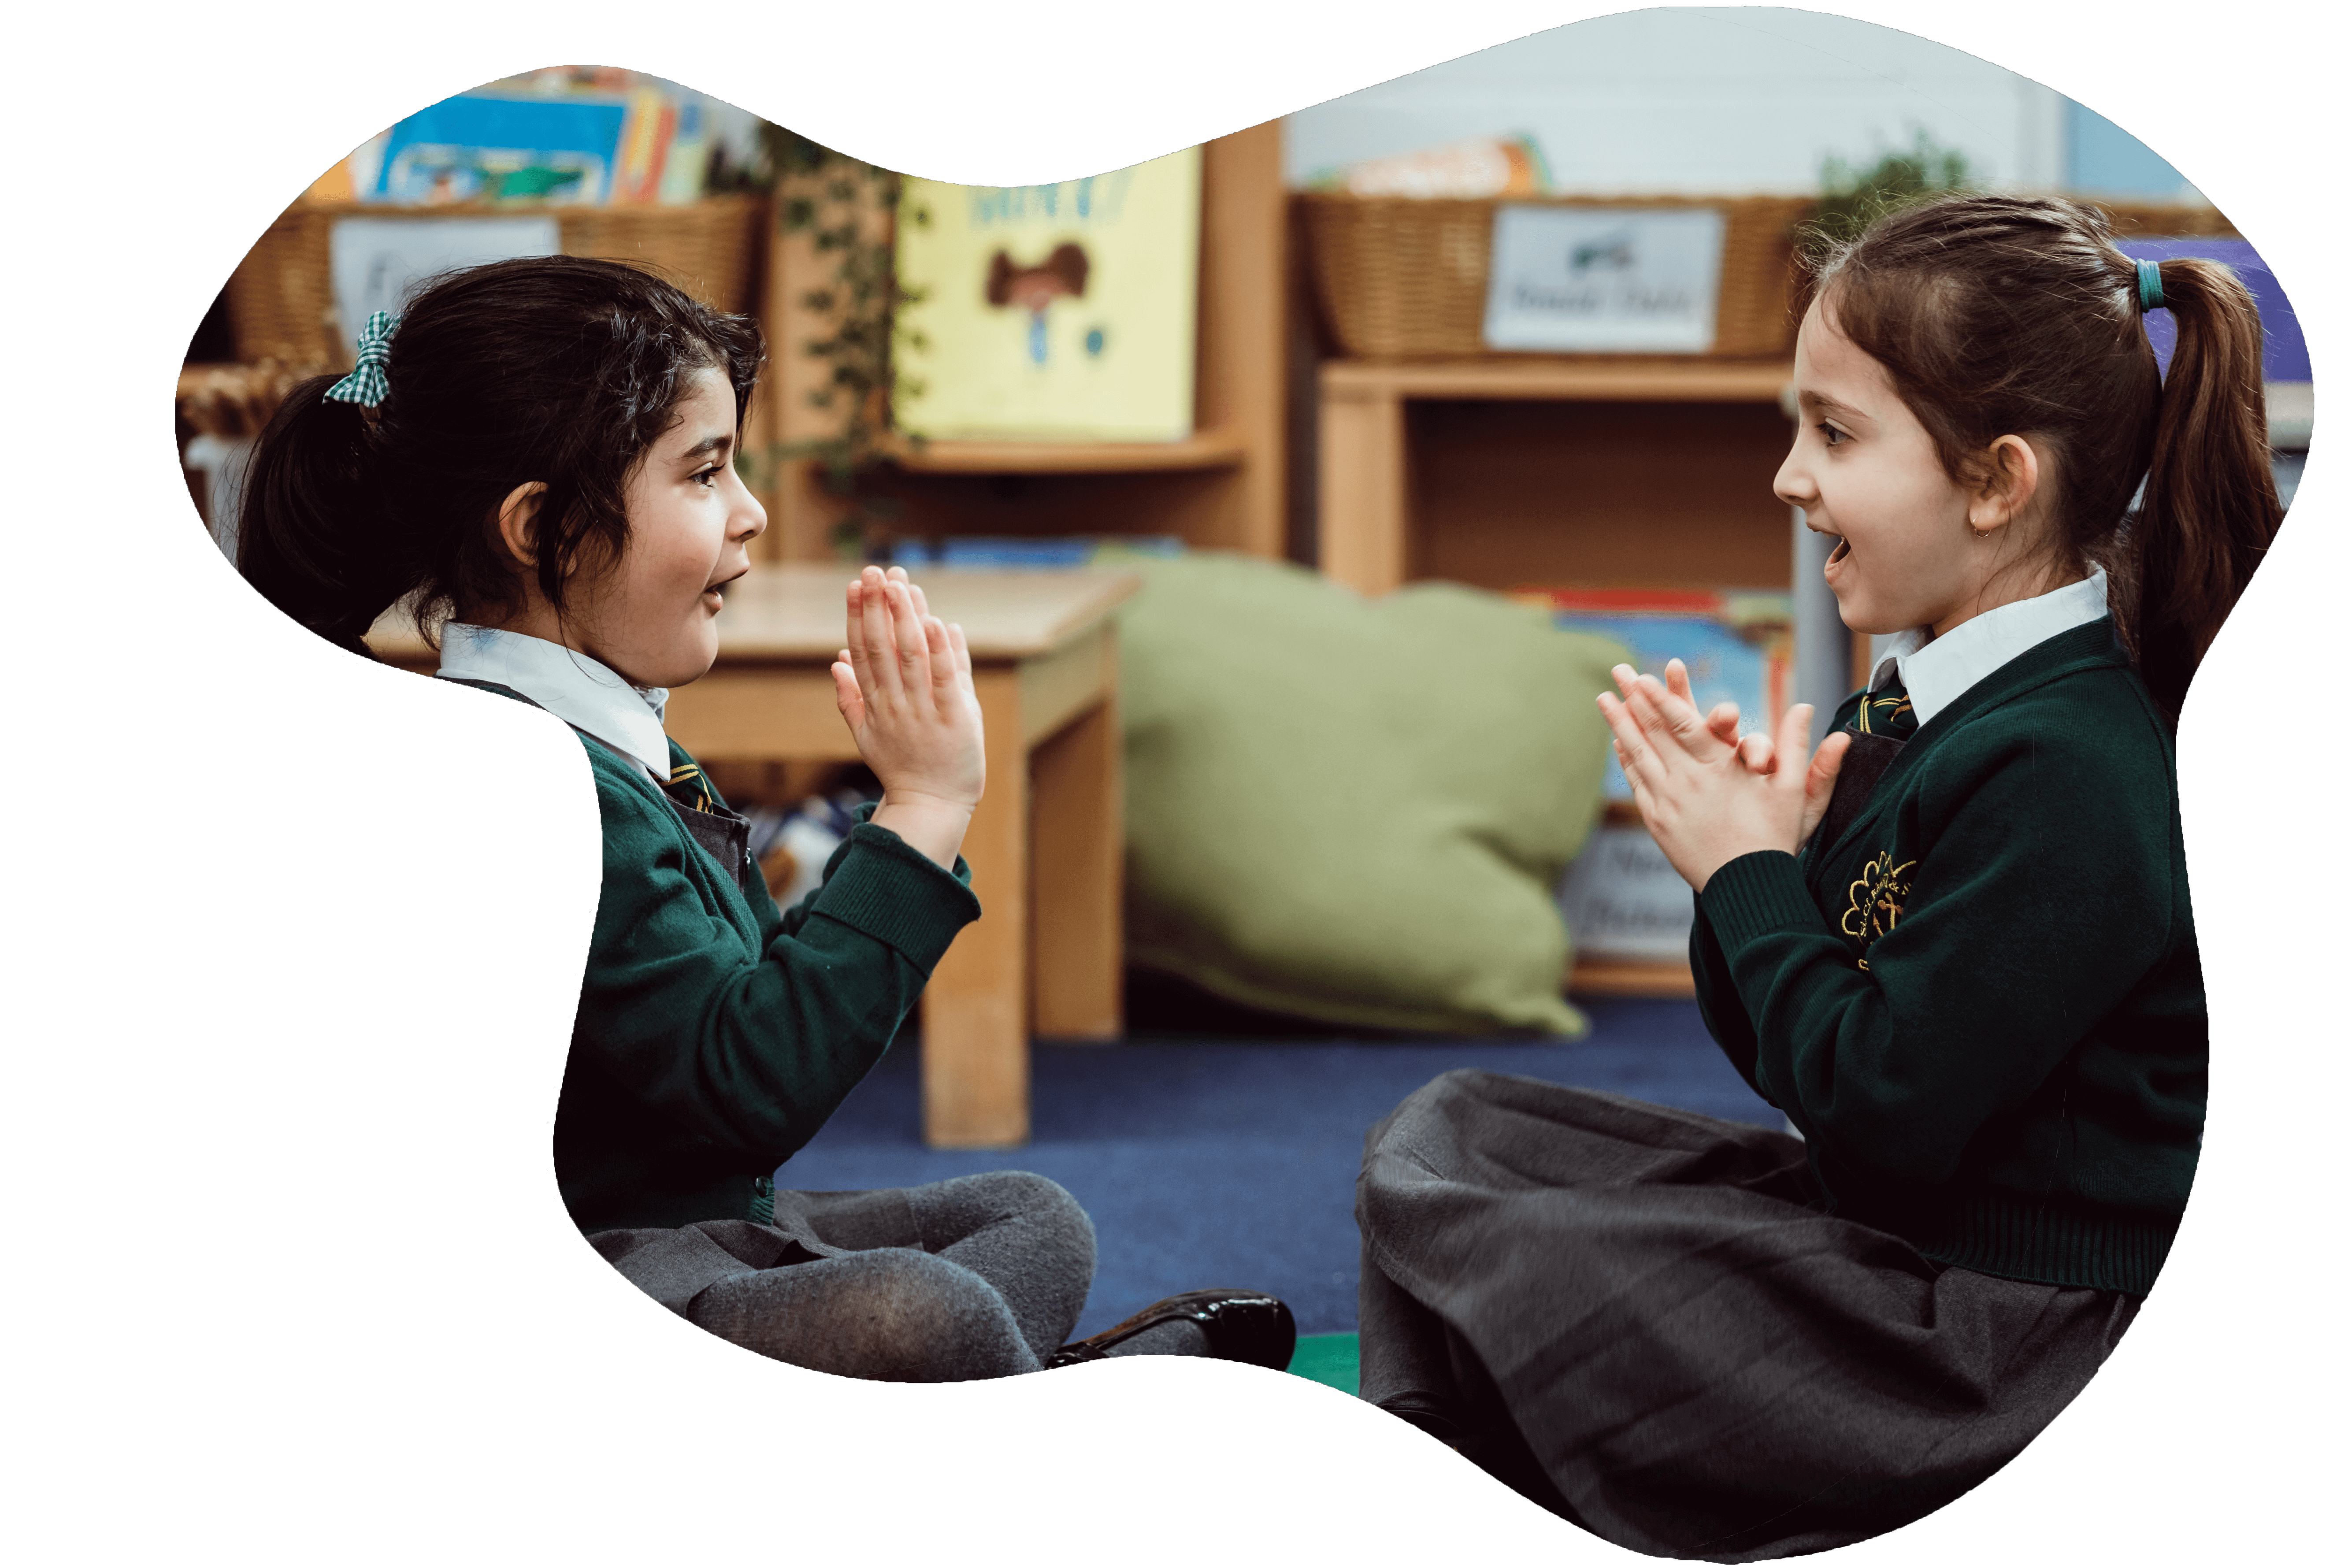 Two girls playing a clapping game